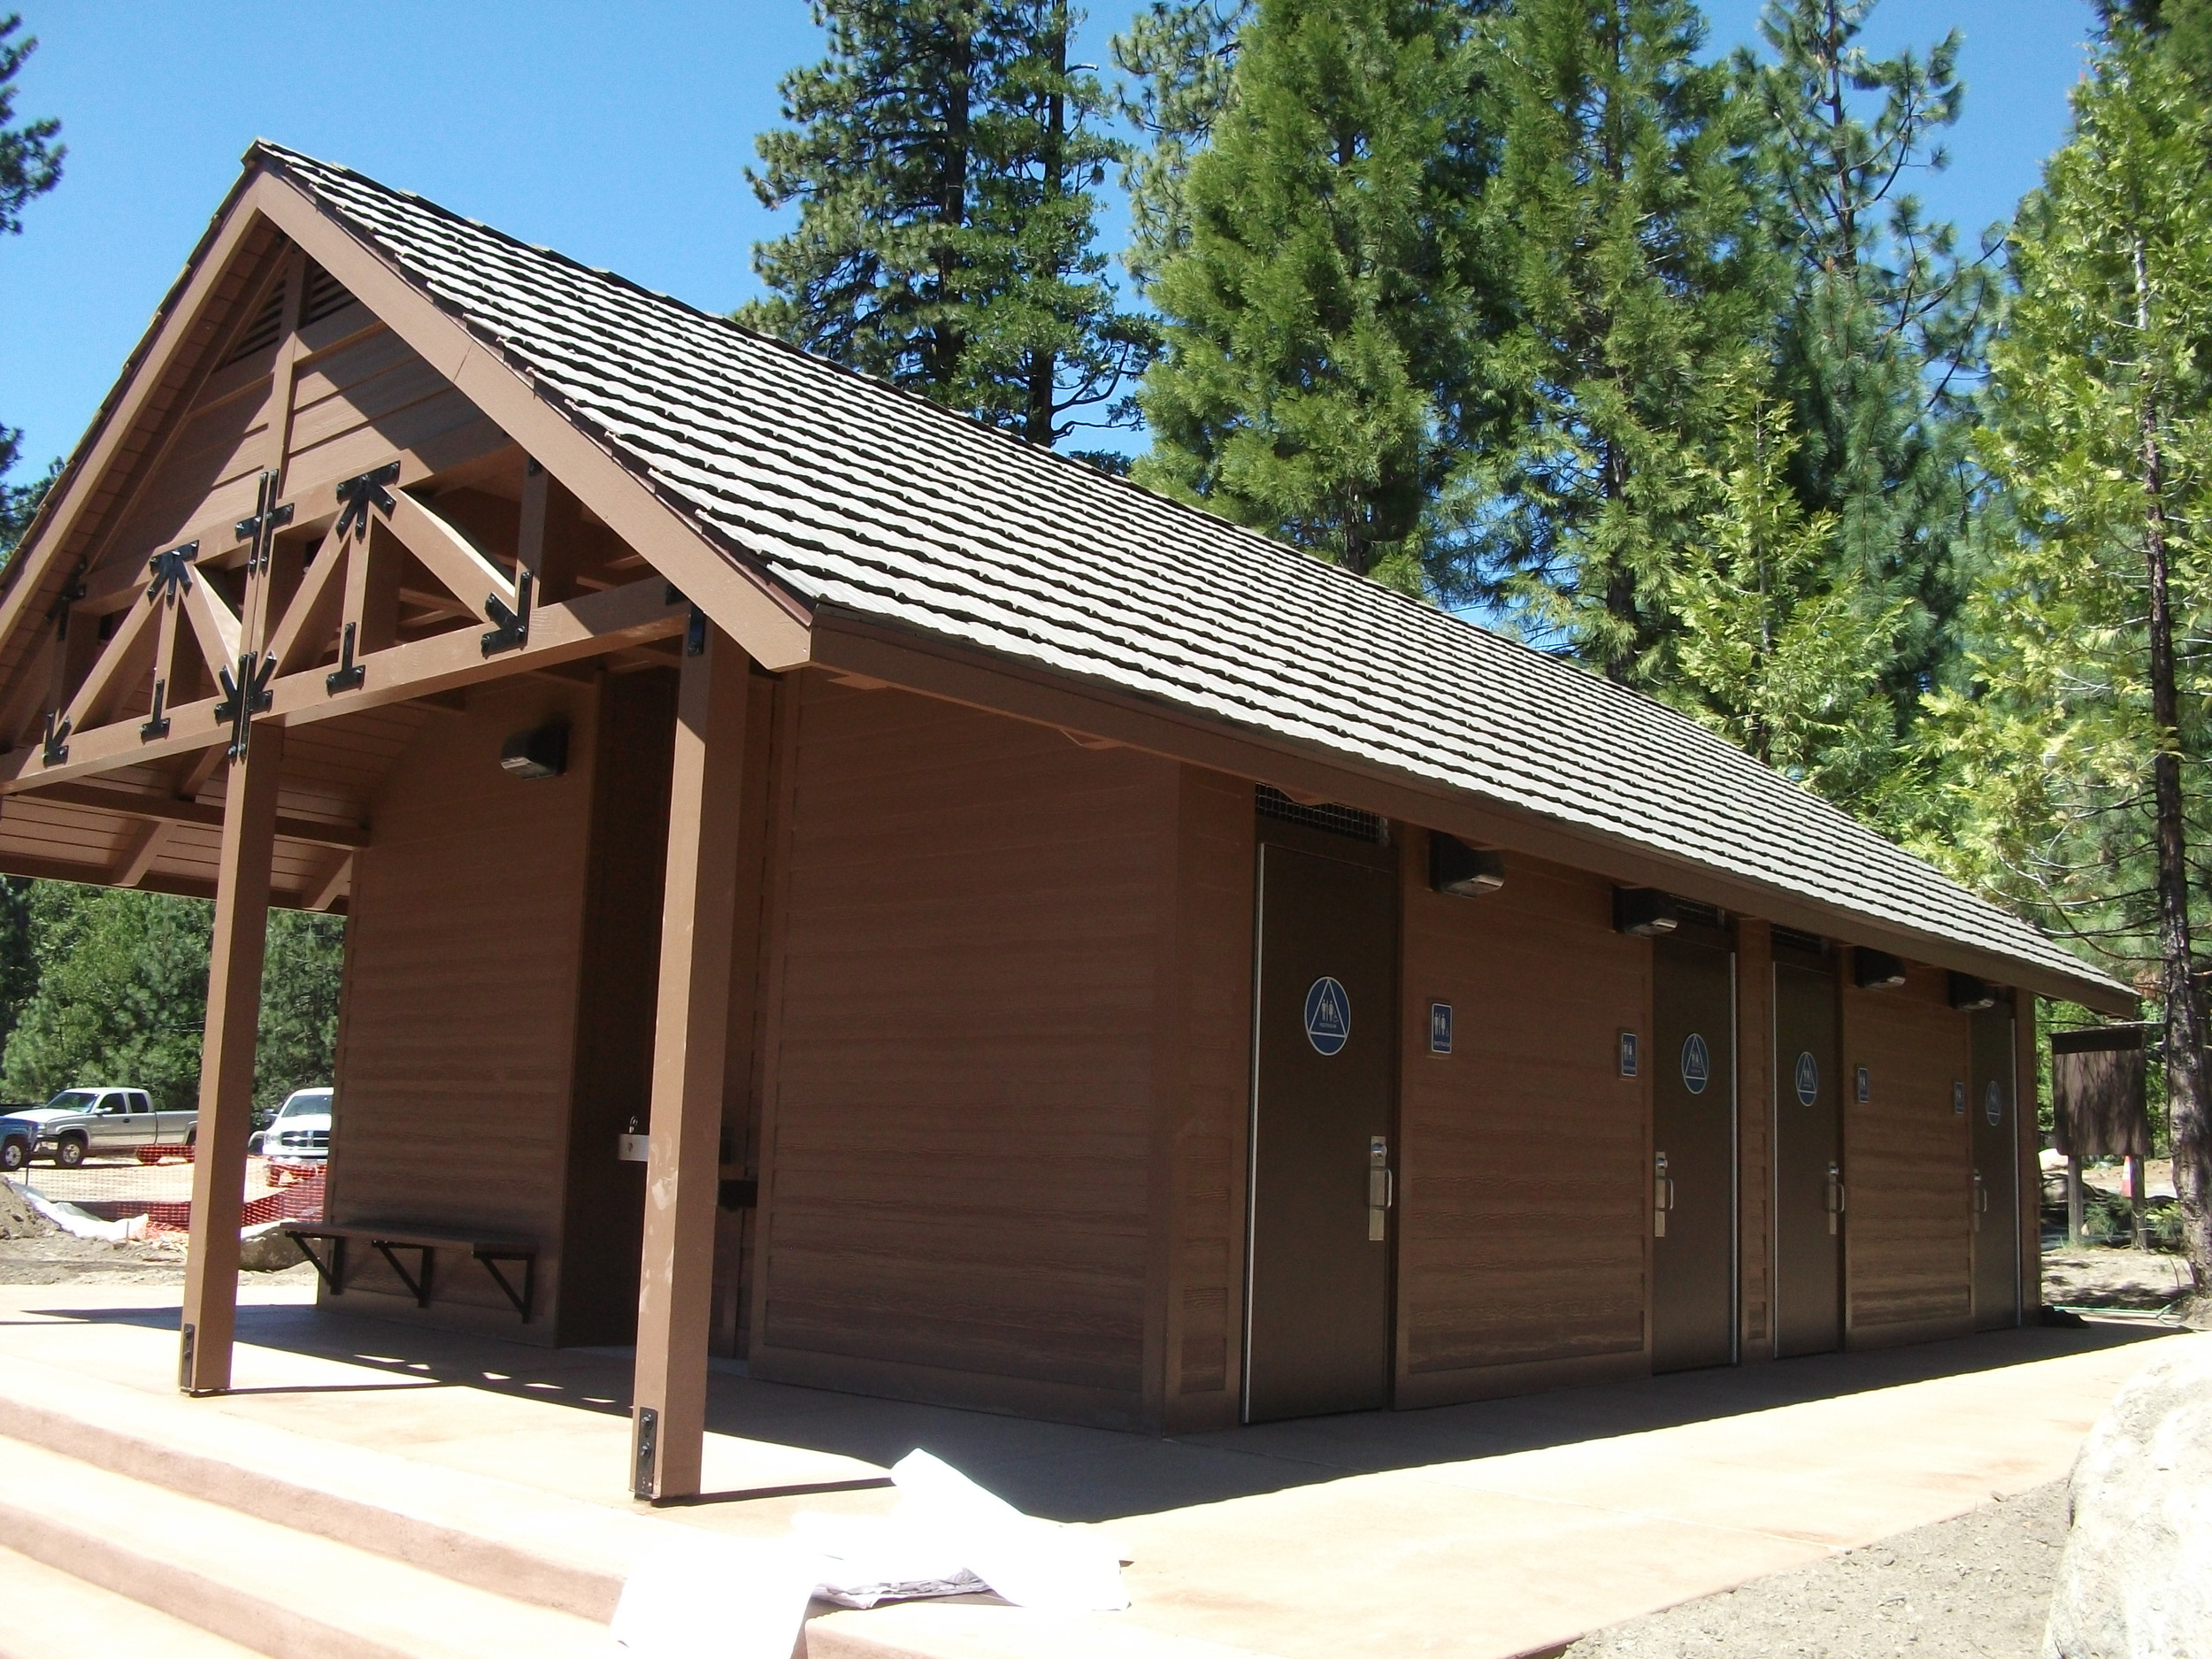 Pinecrest West Day Use Area BOAT LAUNCH (USDA Forest Srvc Pinecrest CA) installed 2013.jpg